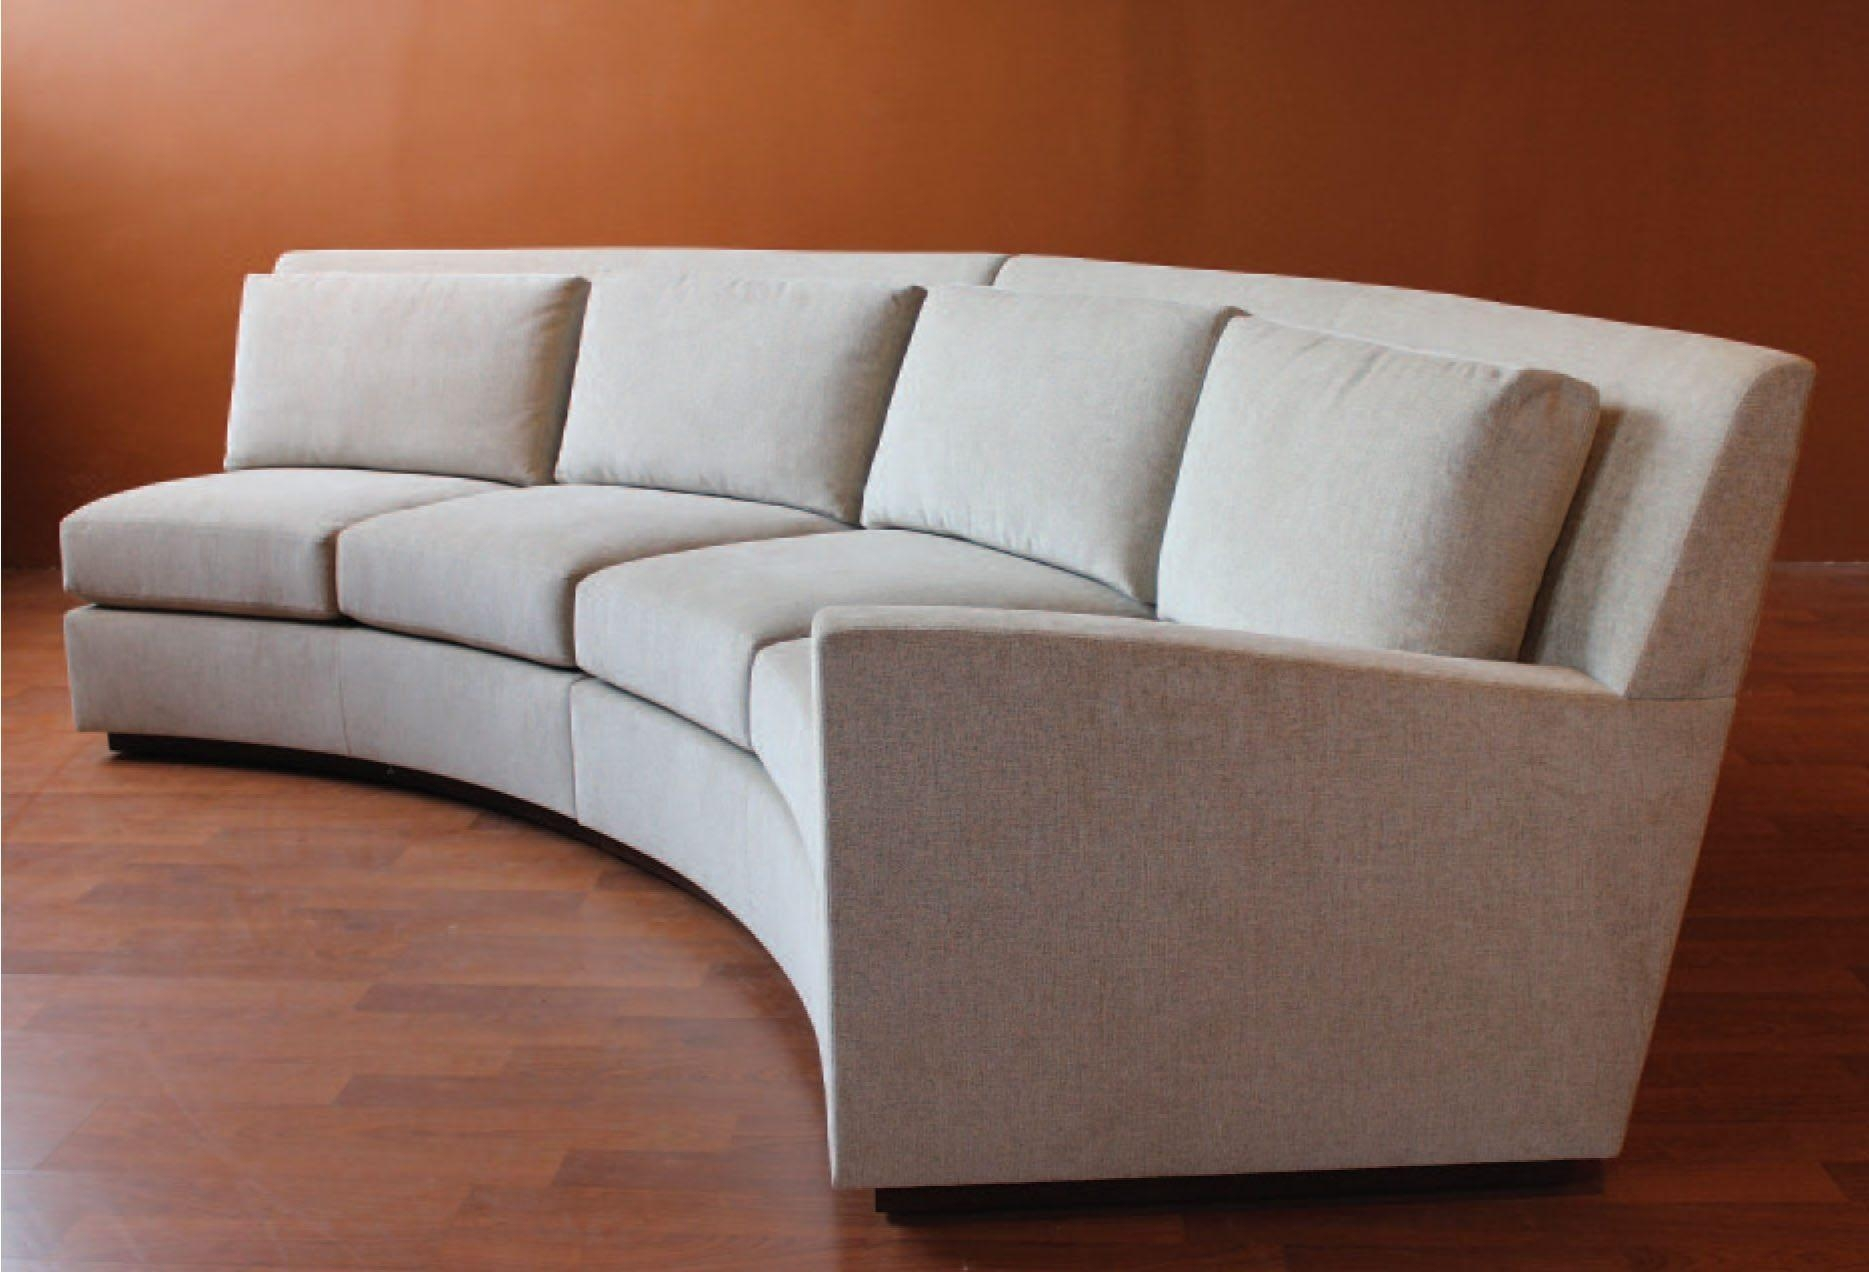 Furniture: Couch Sectional | Sofa With Chaise Lounge | Round Couches In Round Sectional Sofa Bed (View 12 of 20)